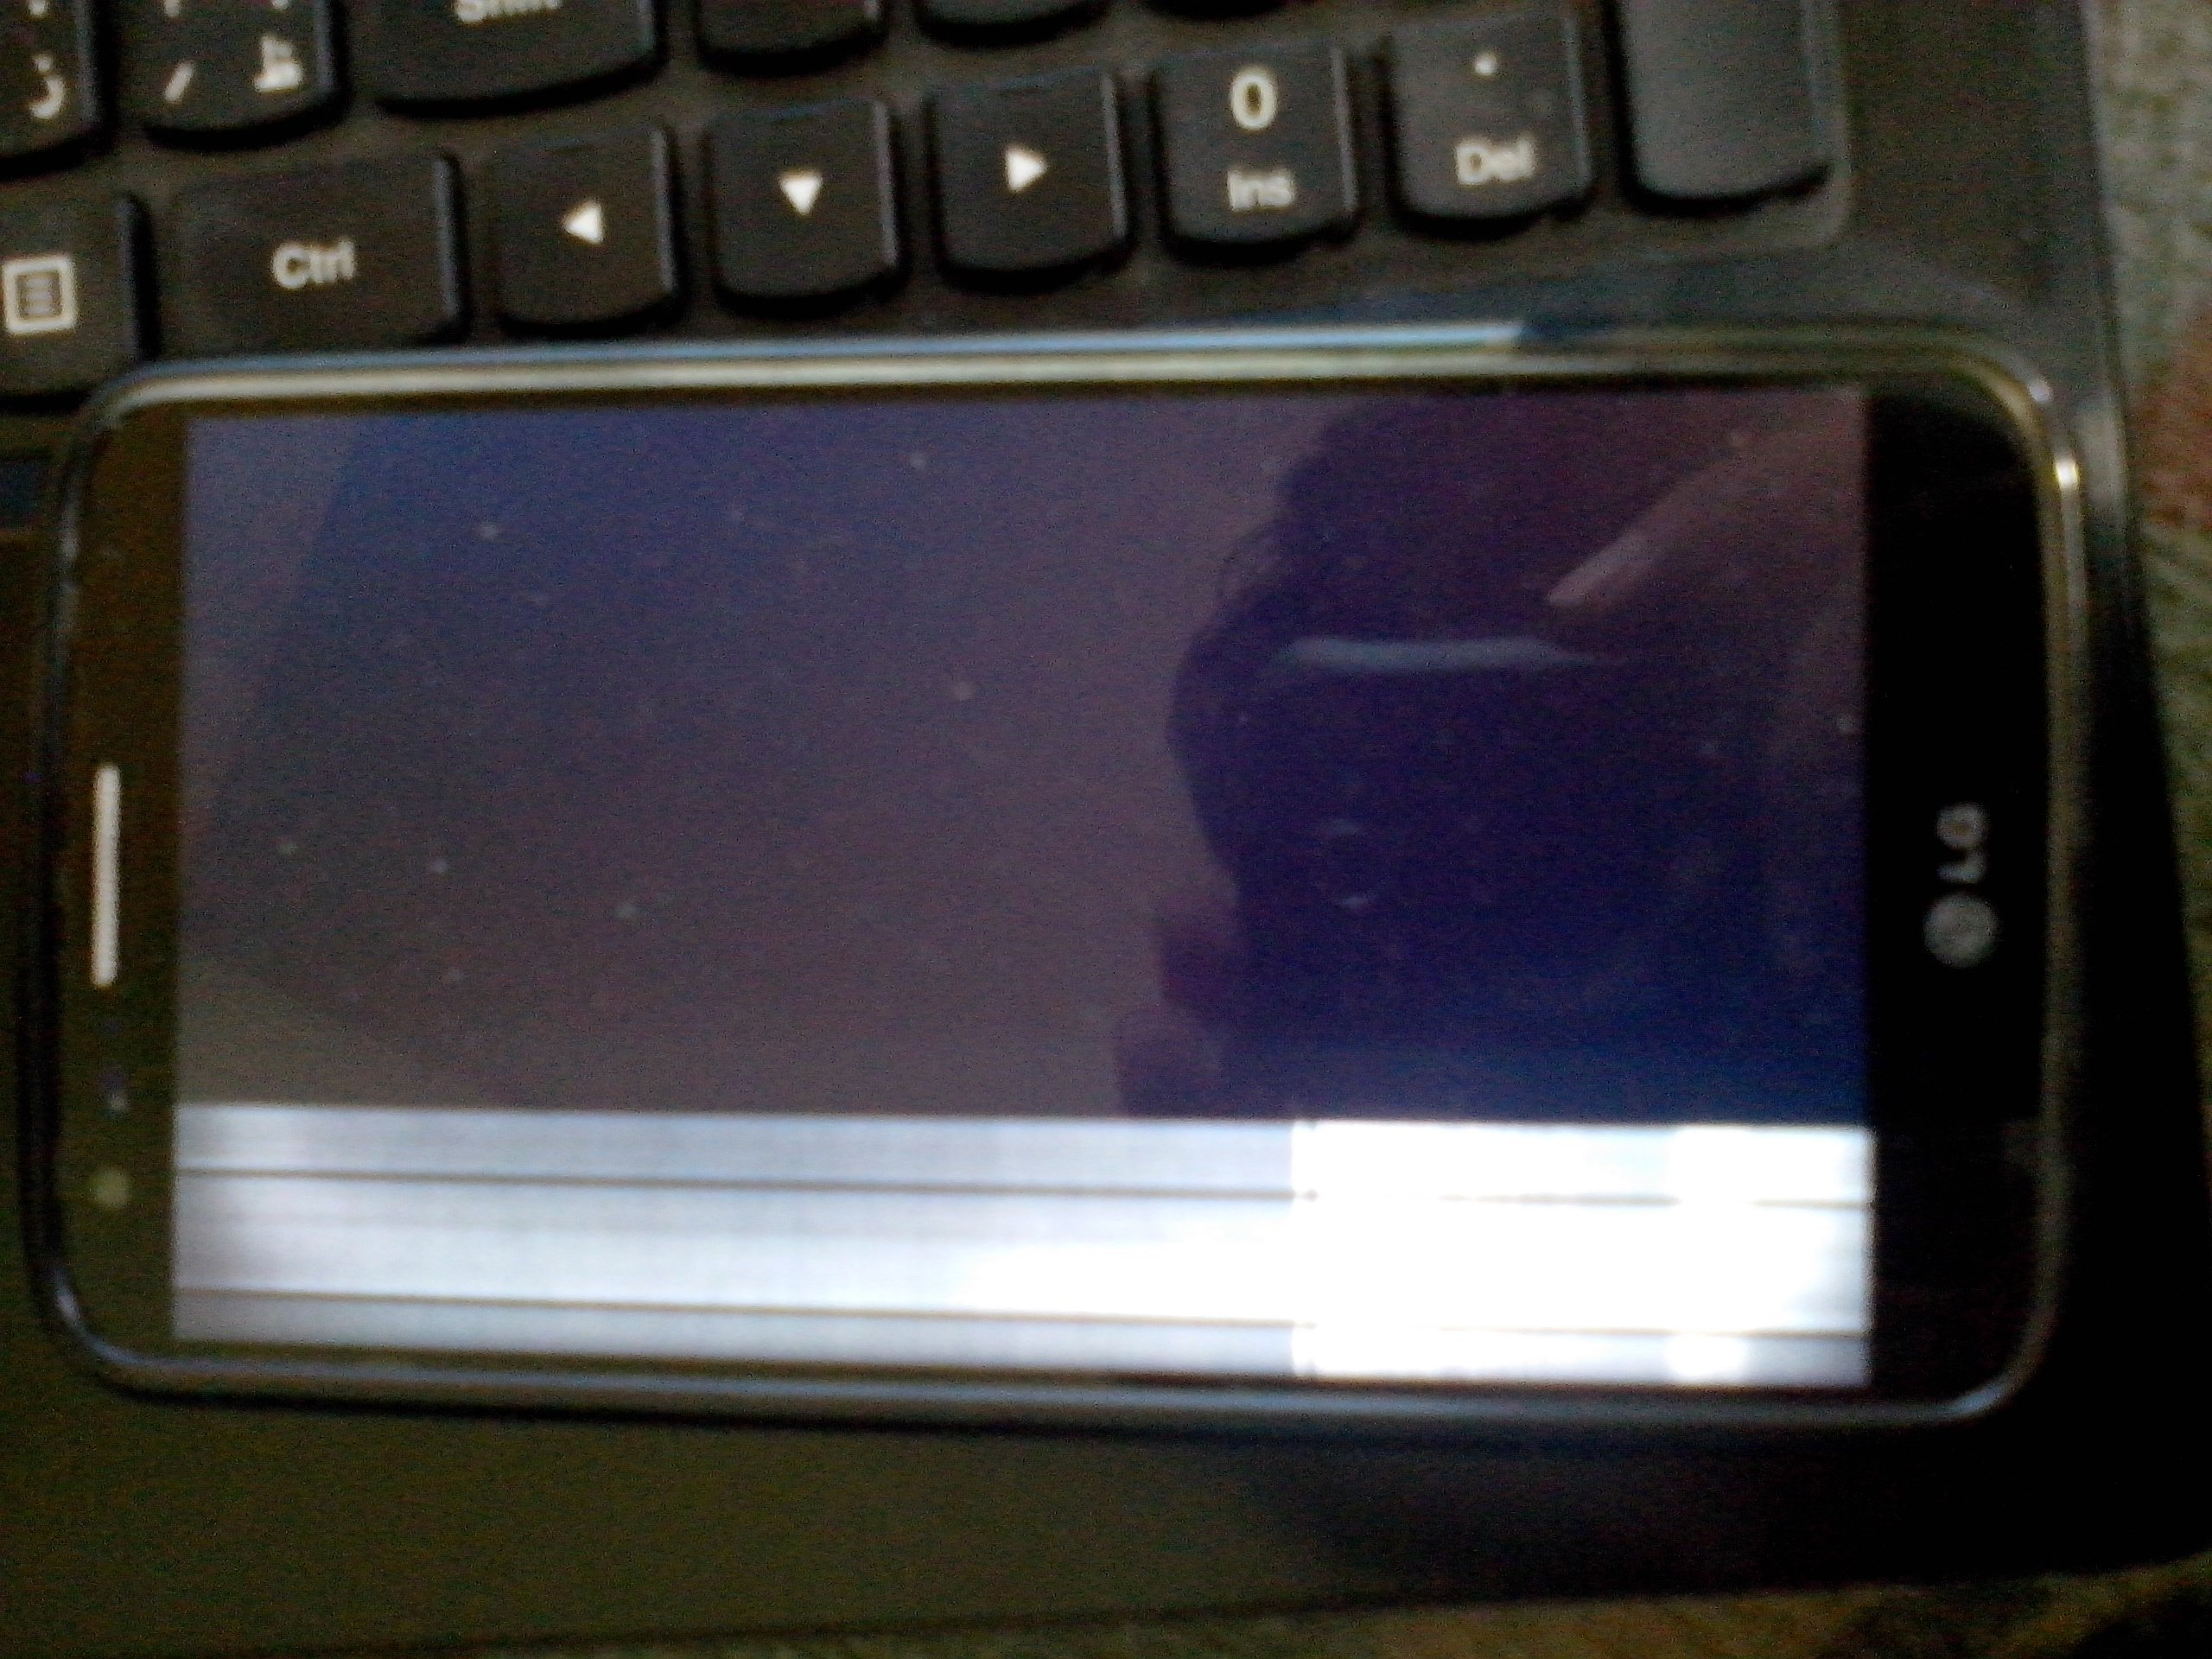 Anyone familiar with Android software repair? Need Help